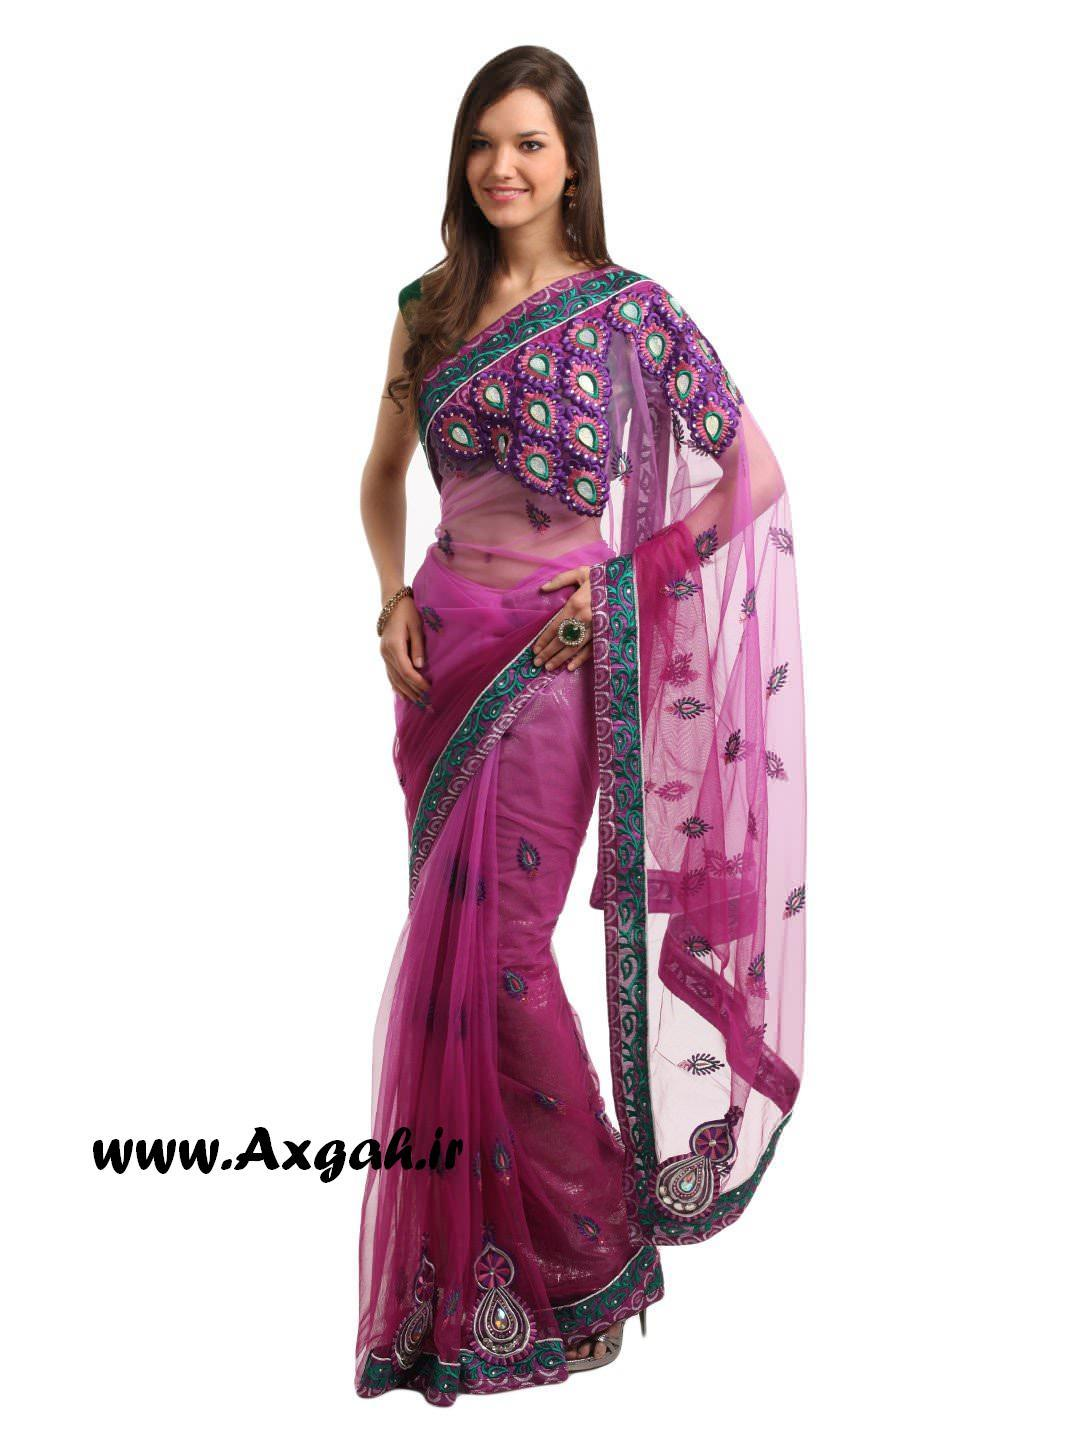 Indian Women Pink Sari e35698932ee8a28dfc4db7827f245673 images 1080 1440 mini مدل های لباس هندی 2013